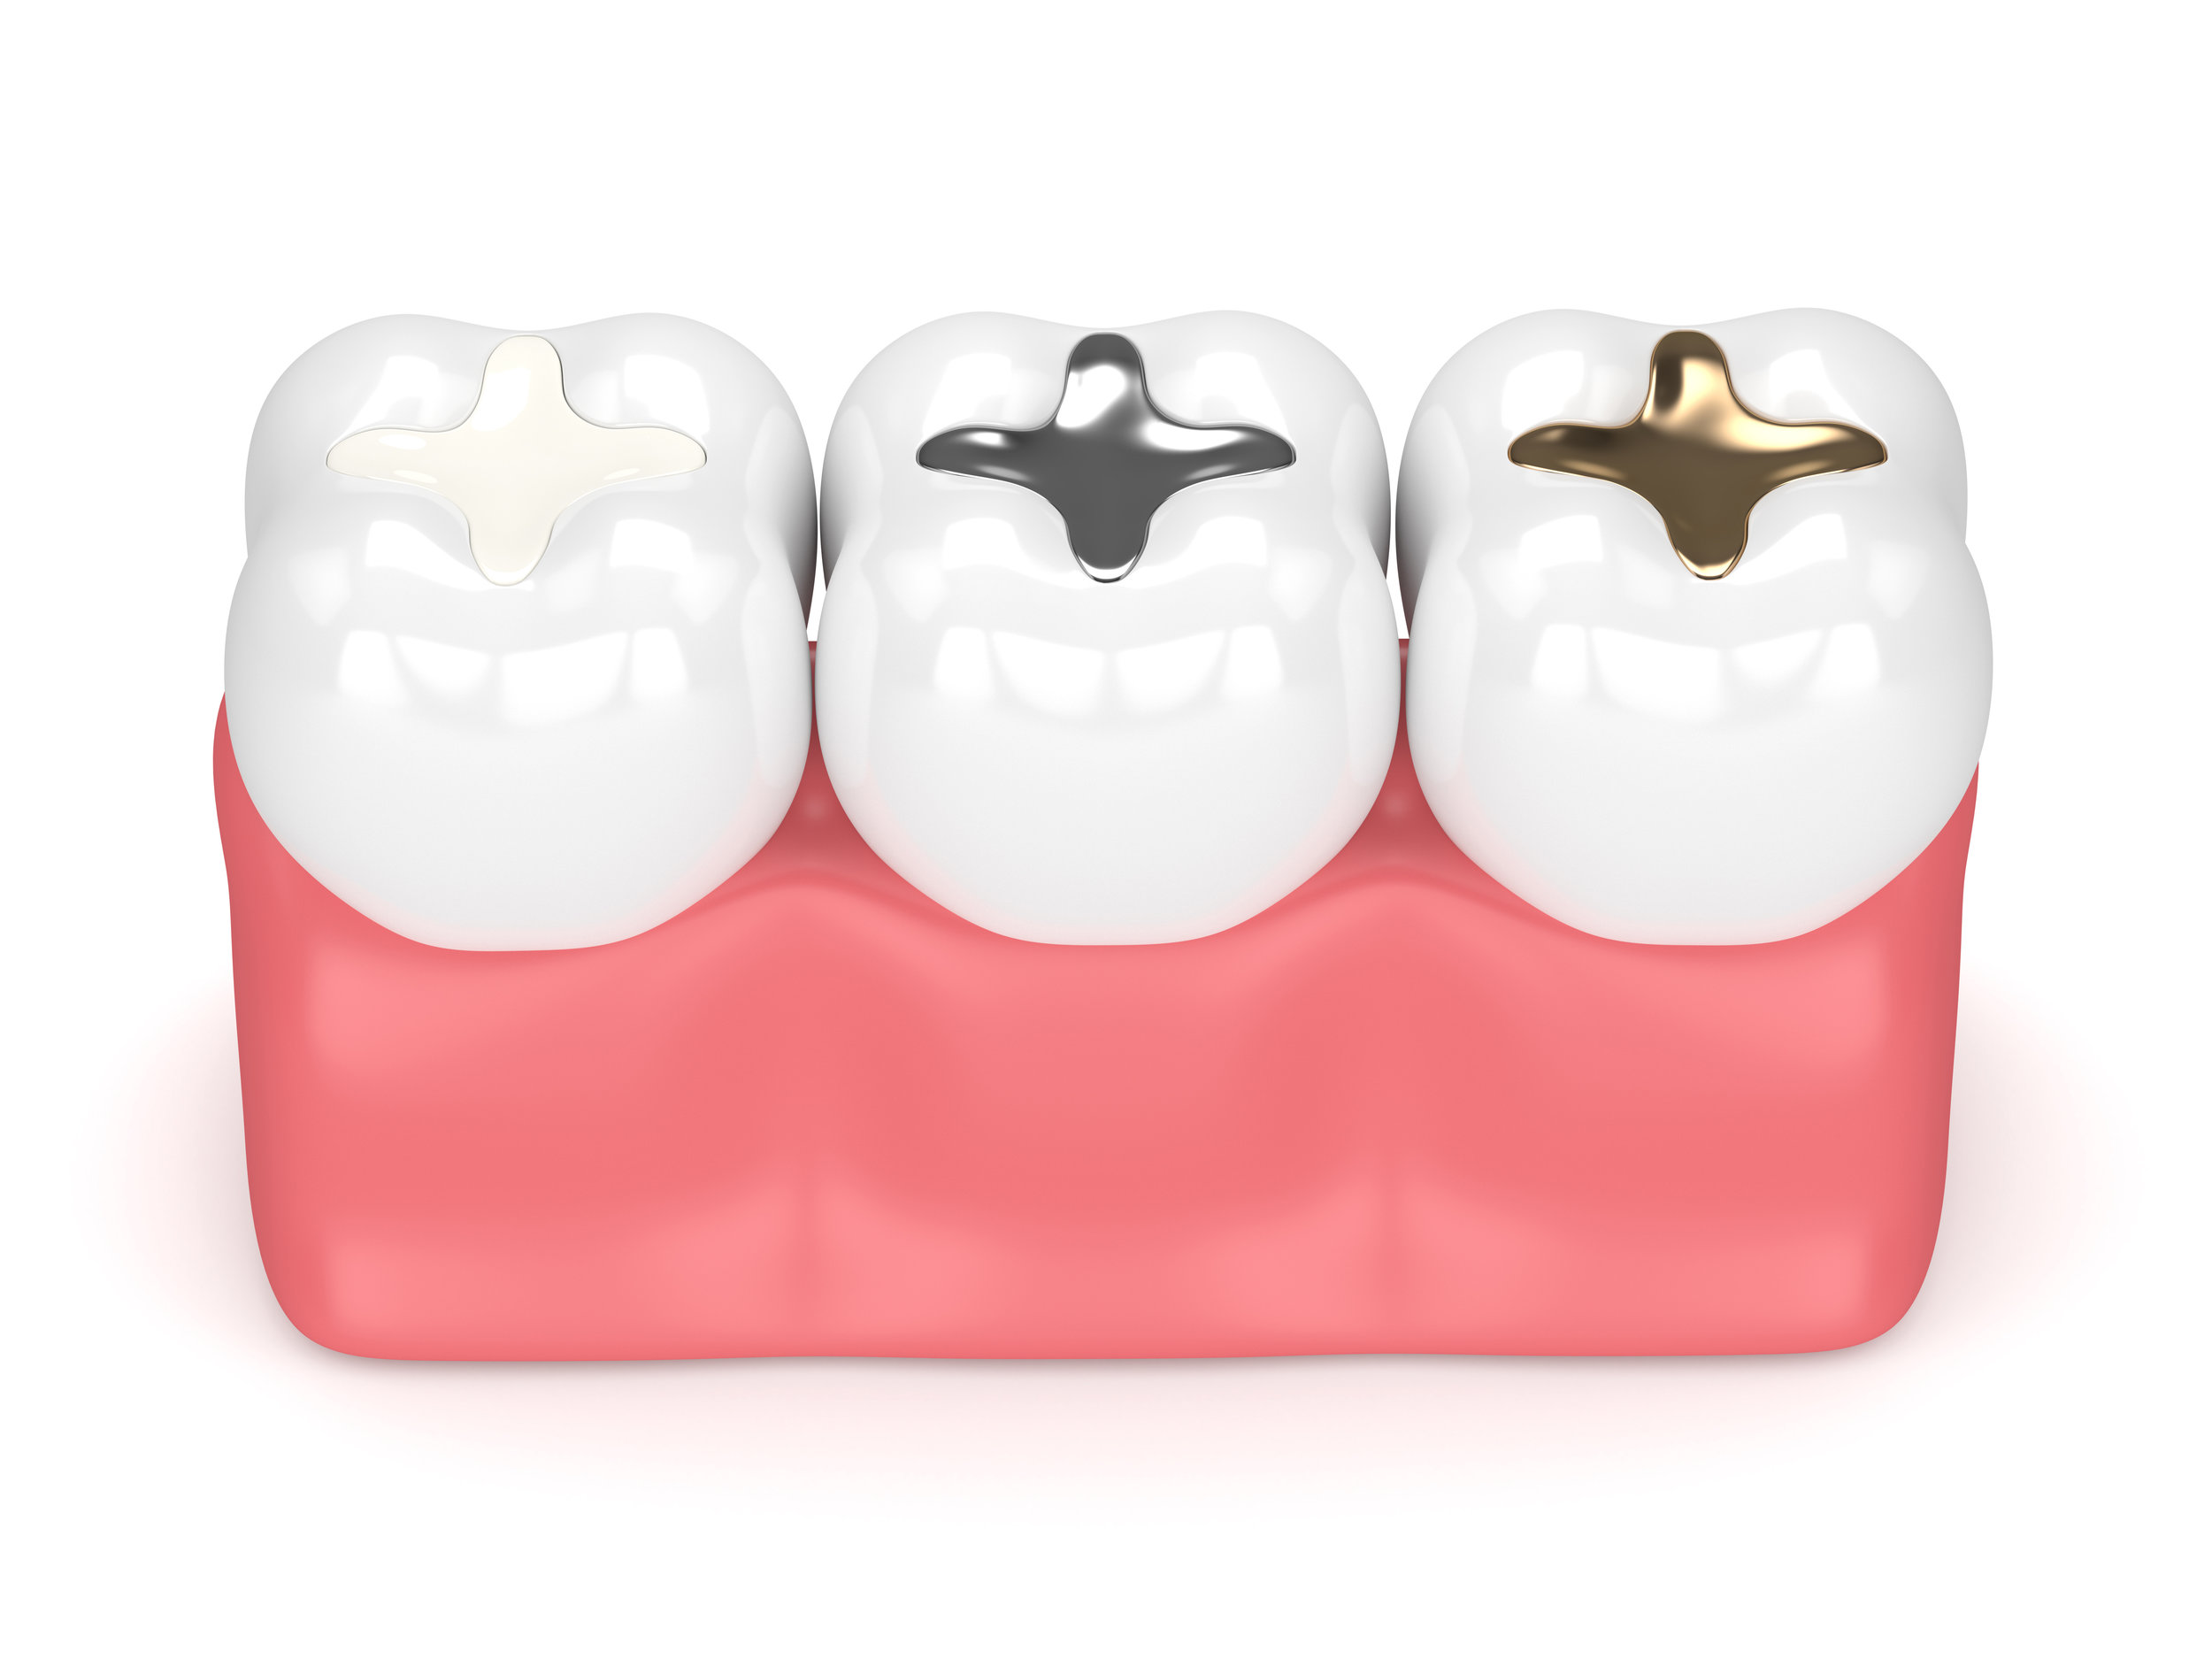 Fillings - Fillings, otherwise known as dental restorations, are used to prevent the spread of tooth decay or correct any cosmetic damage.Learn More